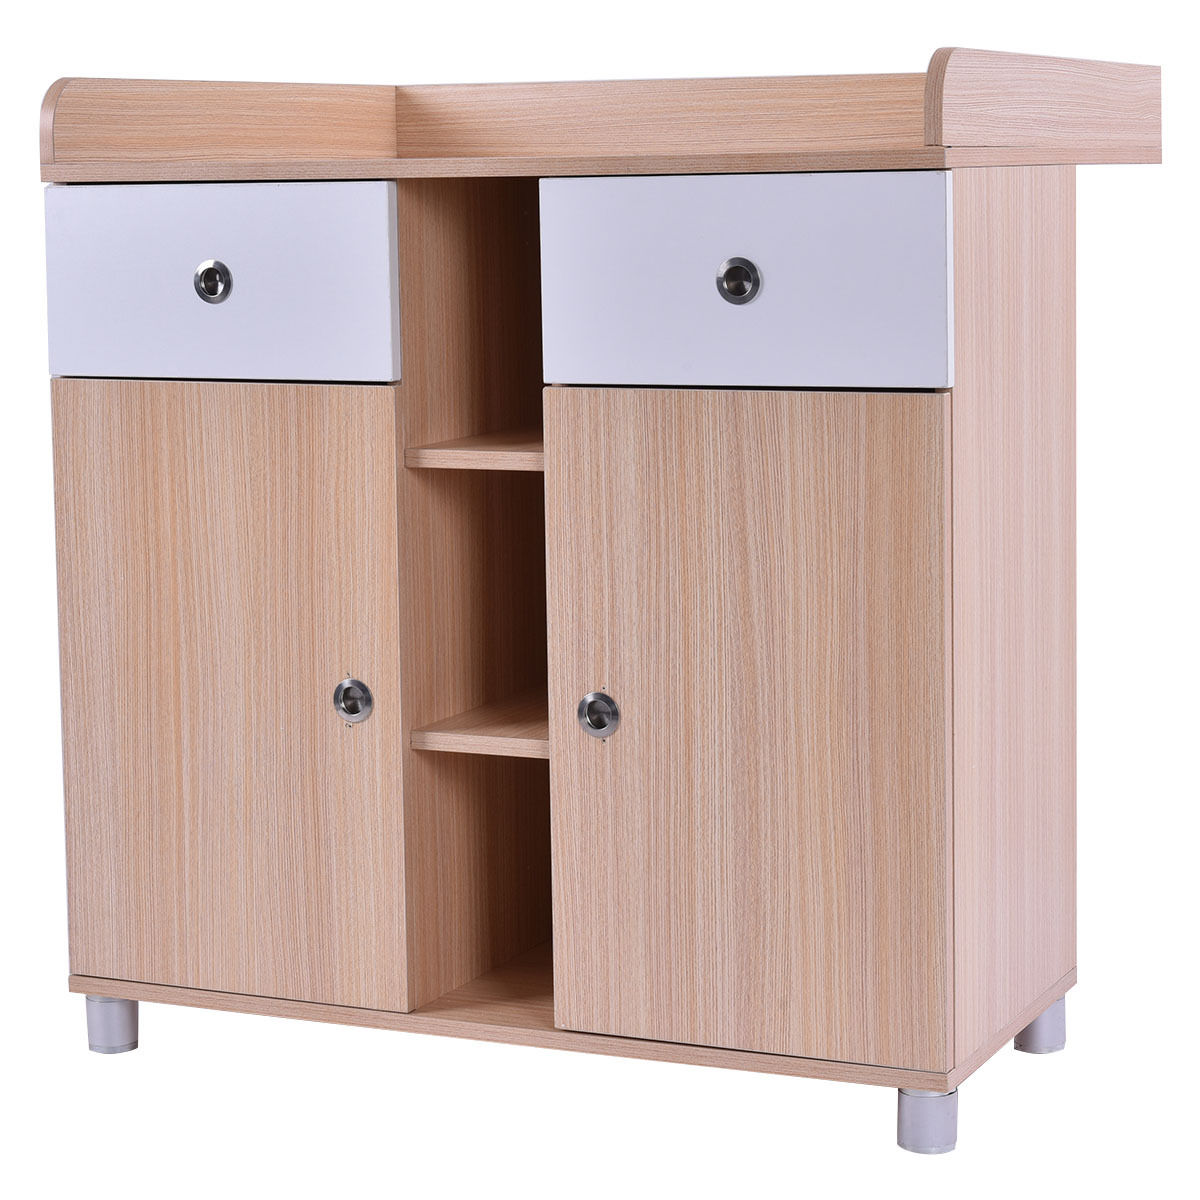 Costway Baby Changing Table Nursery Diaper Station Dresser Infant Storage Drawer 2 Doors